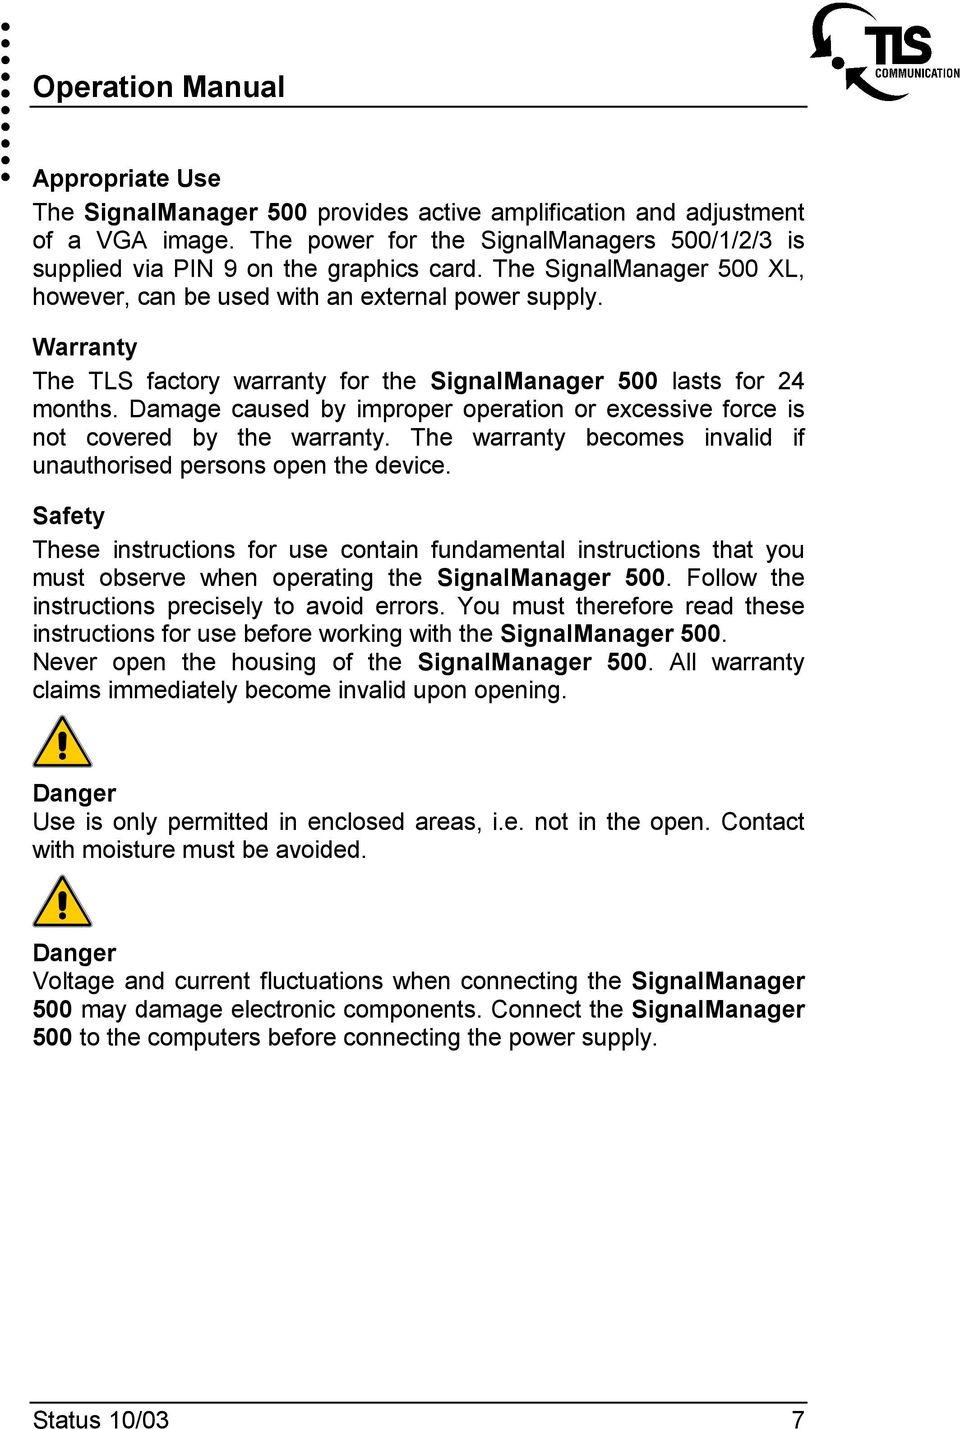 Warranty The TLS factory warranty for the SignalManager 500 lasts for 24 months. Damage caused by improper operation or excessive force is not covered by the warranty.